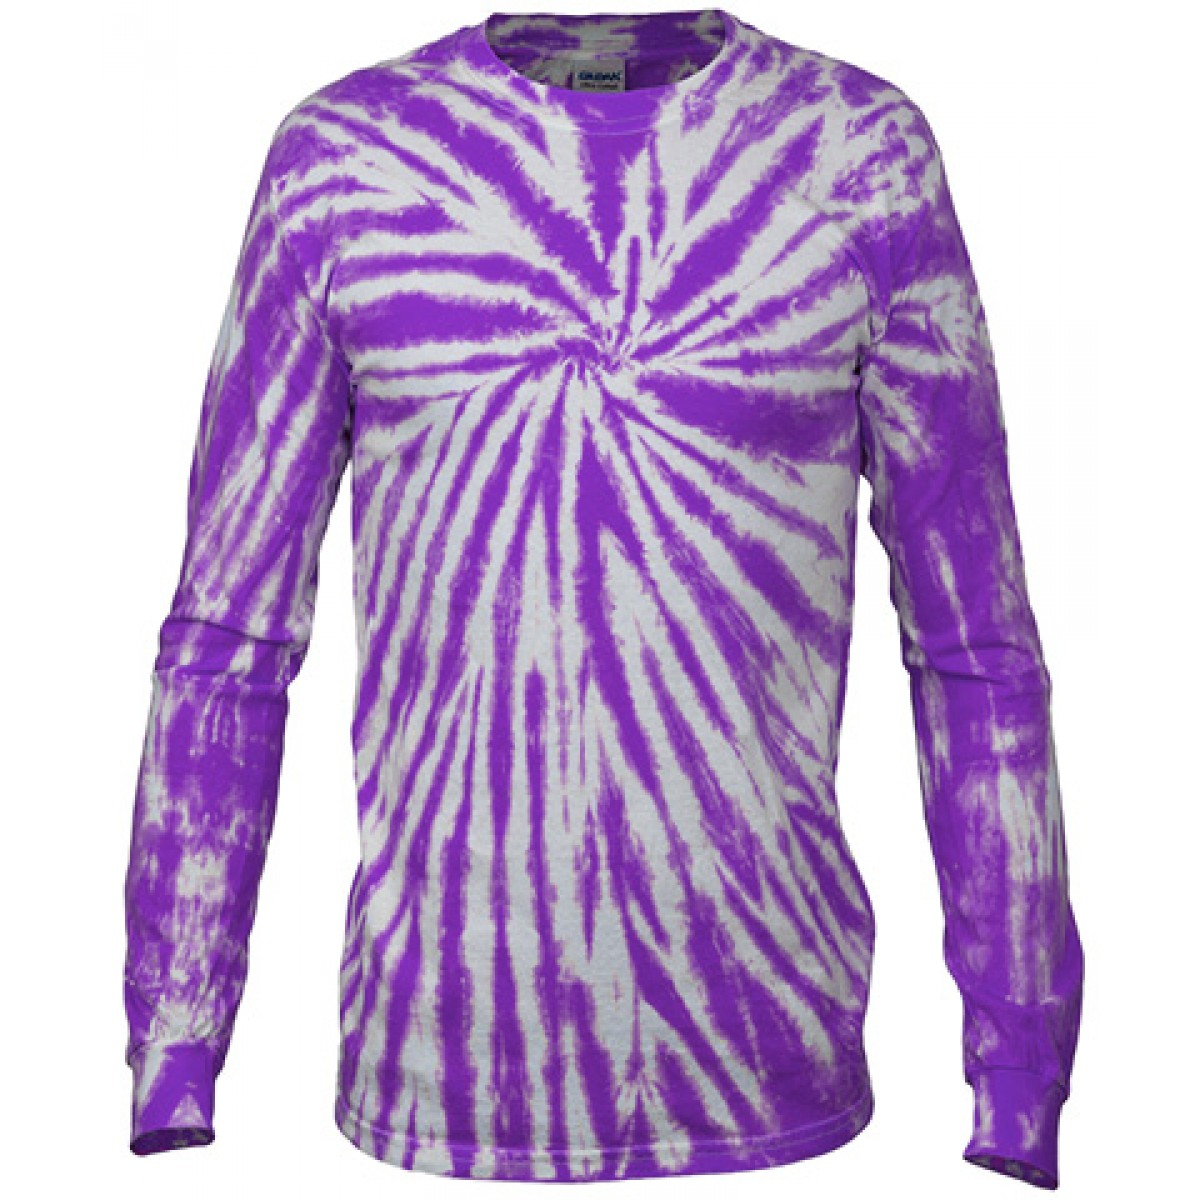 Multi Color Tie-Dye Long Sleeve Shirt -Fuscia-YL